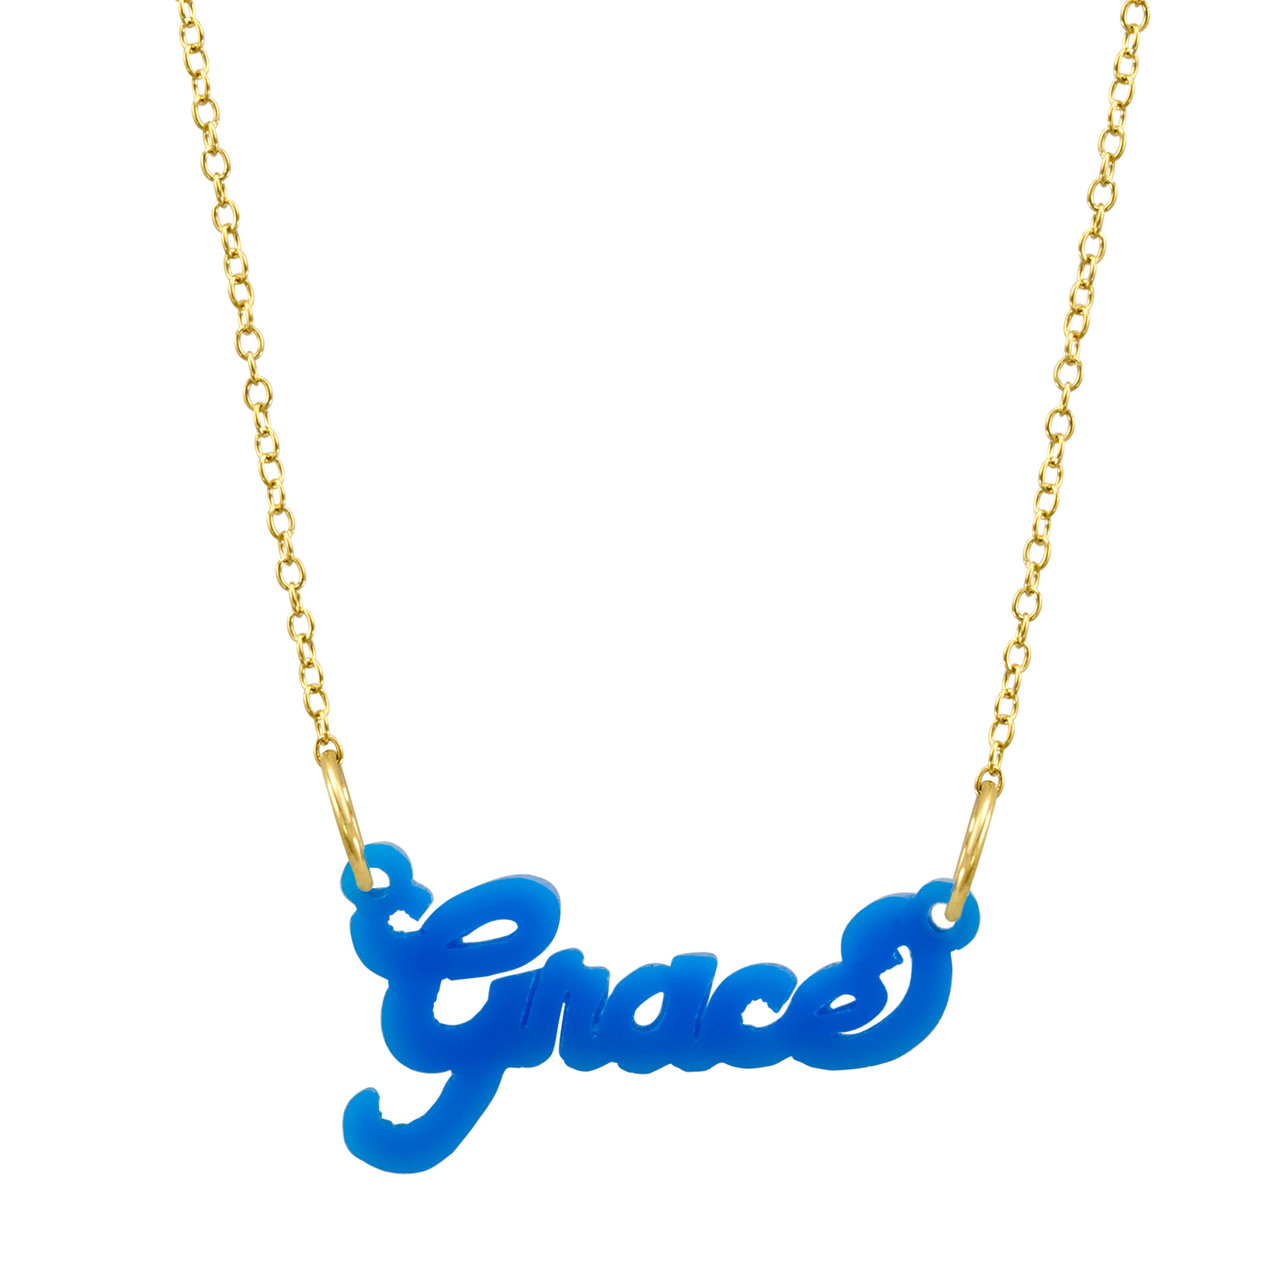 281706949c15a Acrylic Nameplate Necklace with Chain